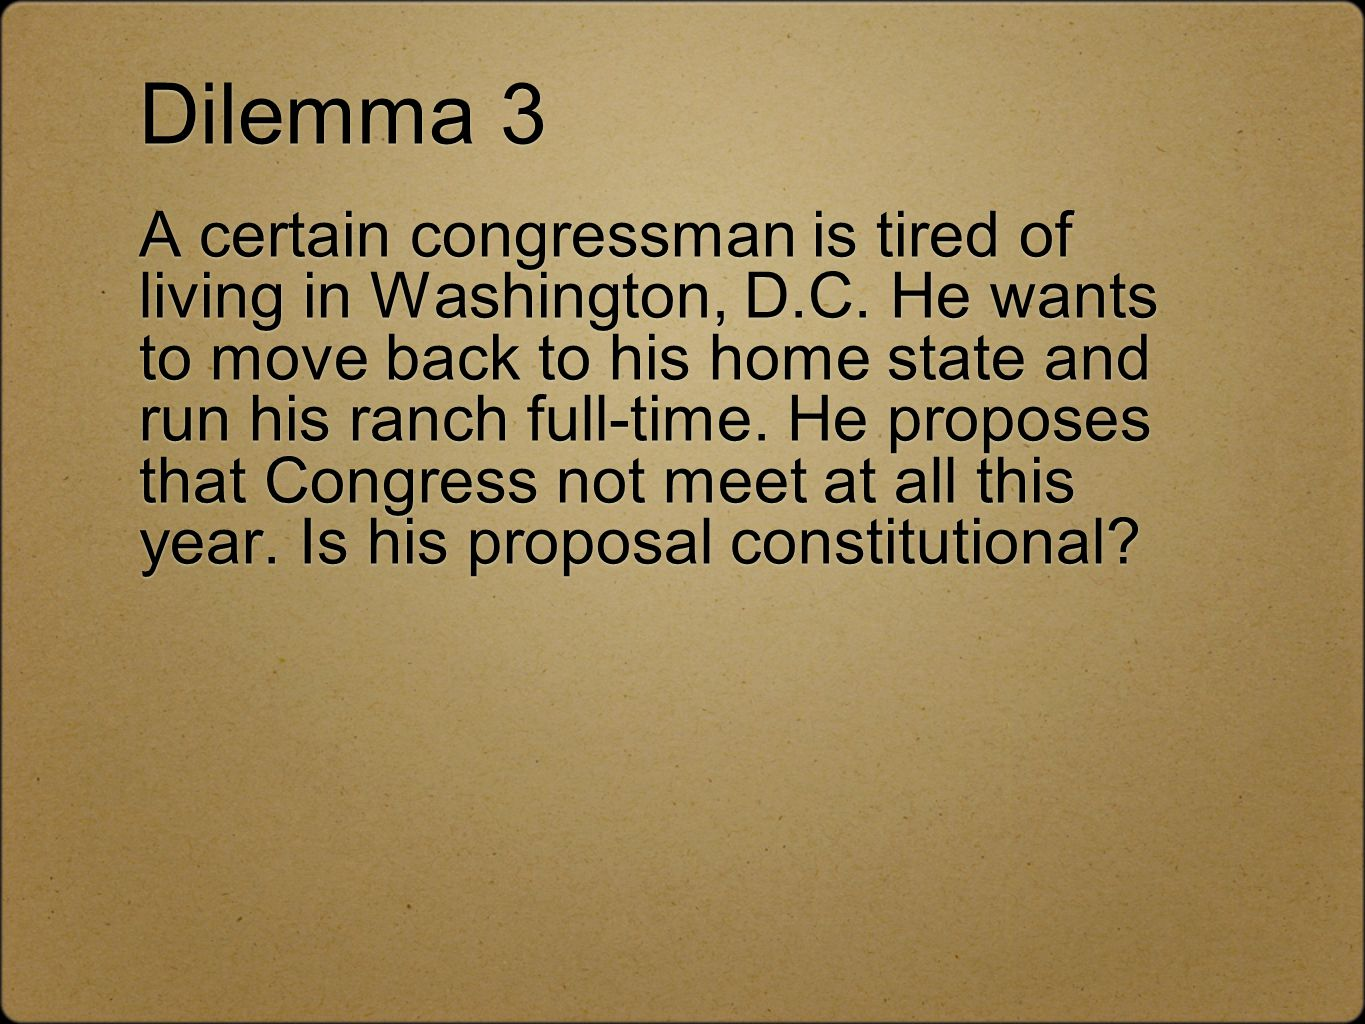 Dilemma 3 A certain congressman is tired of living in Washington, D.C. He wants to move back to his home state and run his ranch full-time. He propose